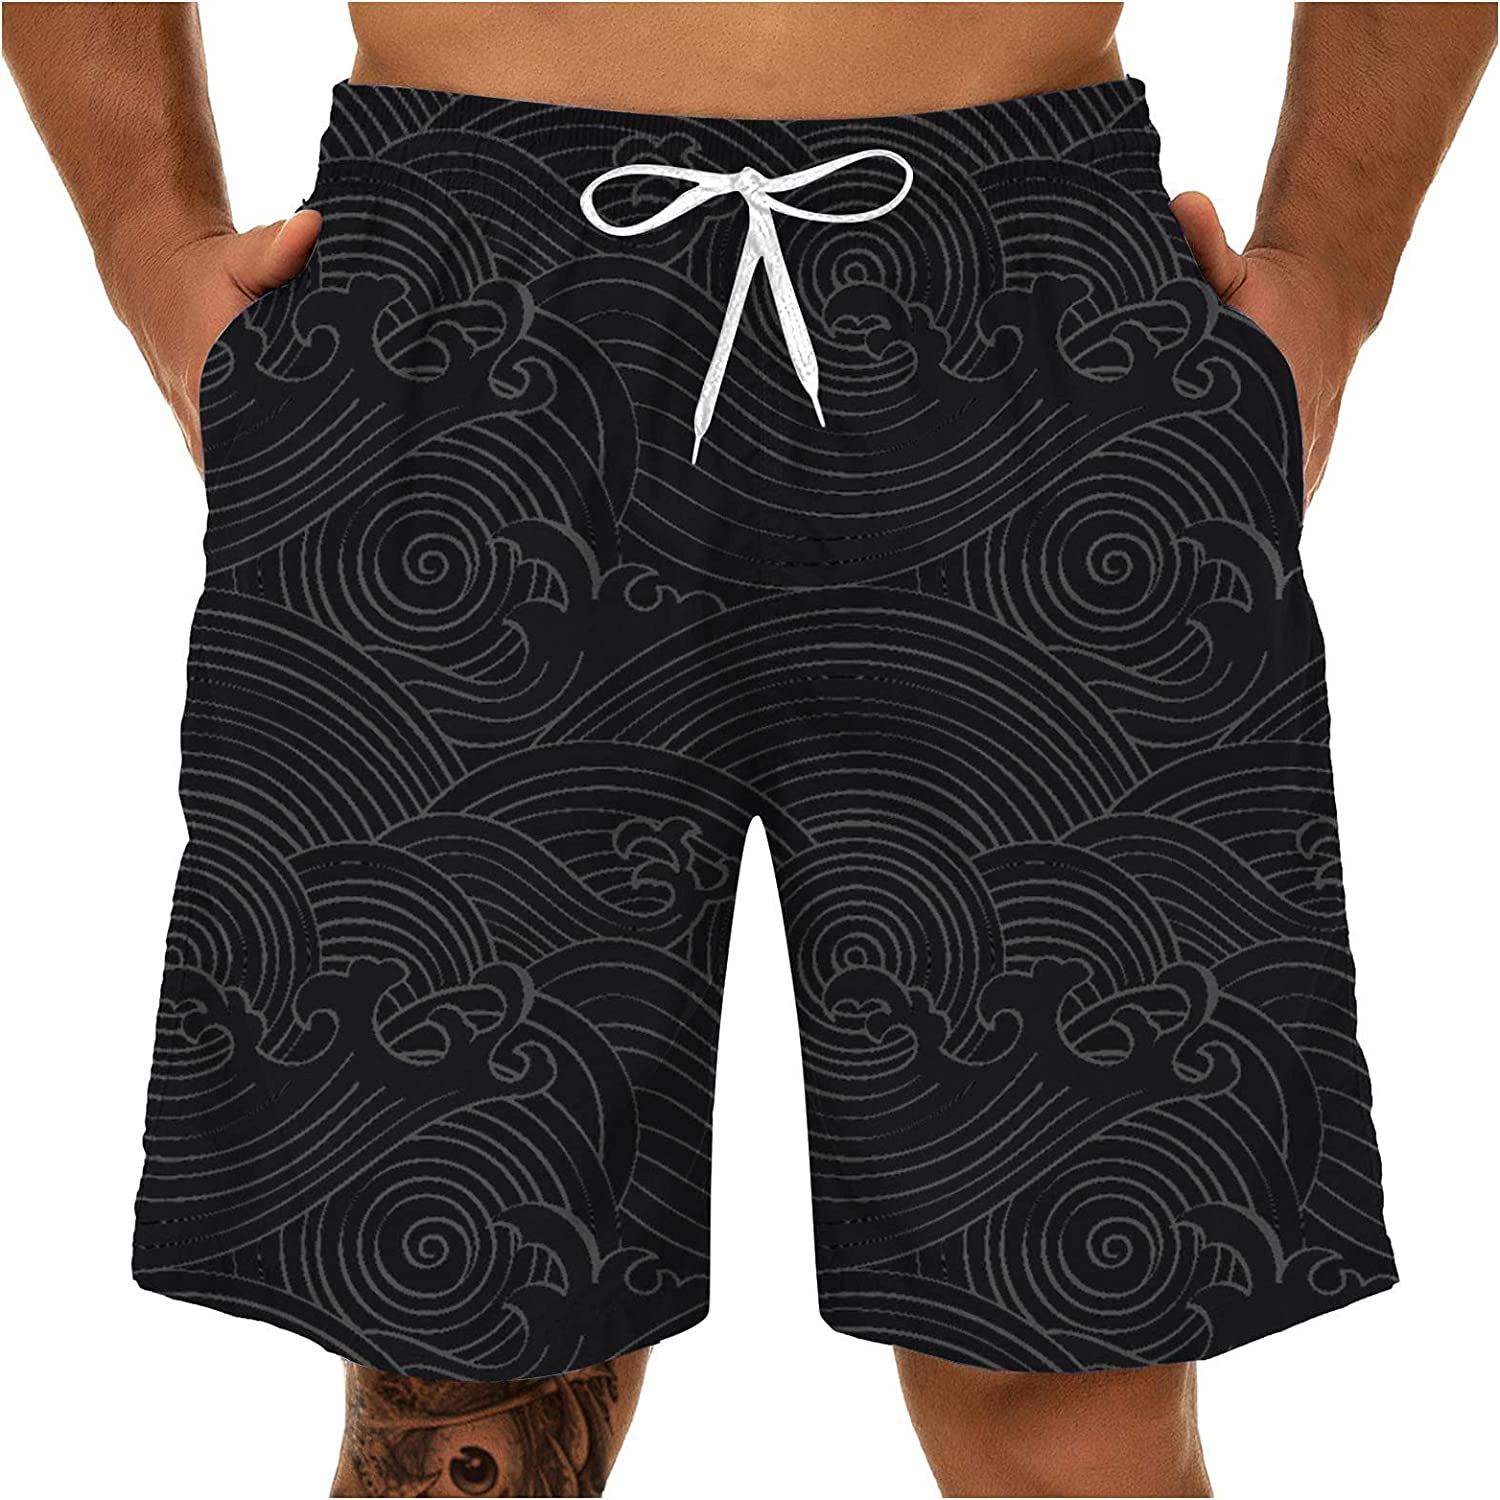 Swimming Trunks for Men 3D Quantity limited Beach Washington Mall Tropical Shorts Swims Dry Quick